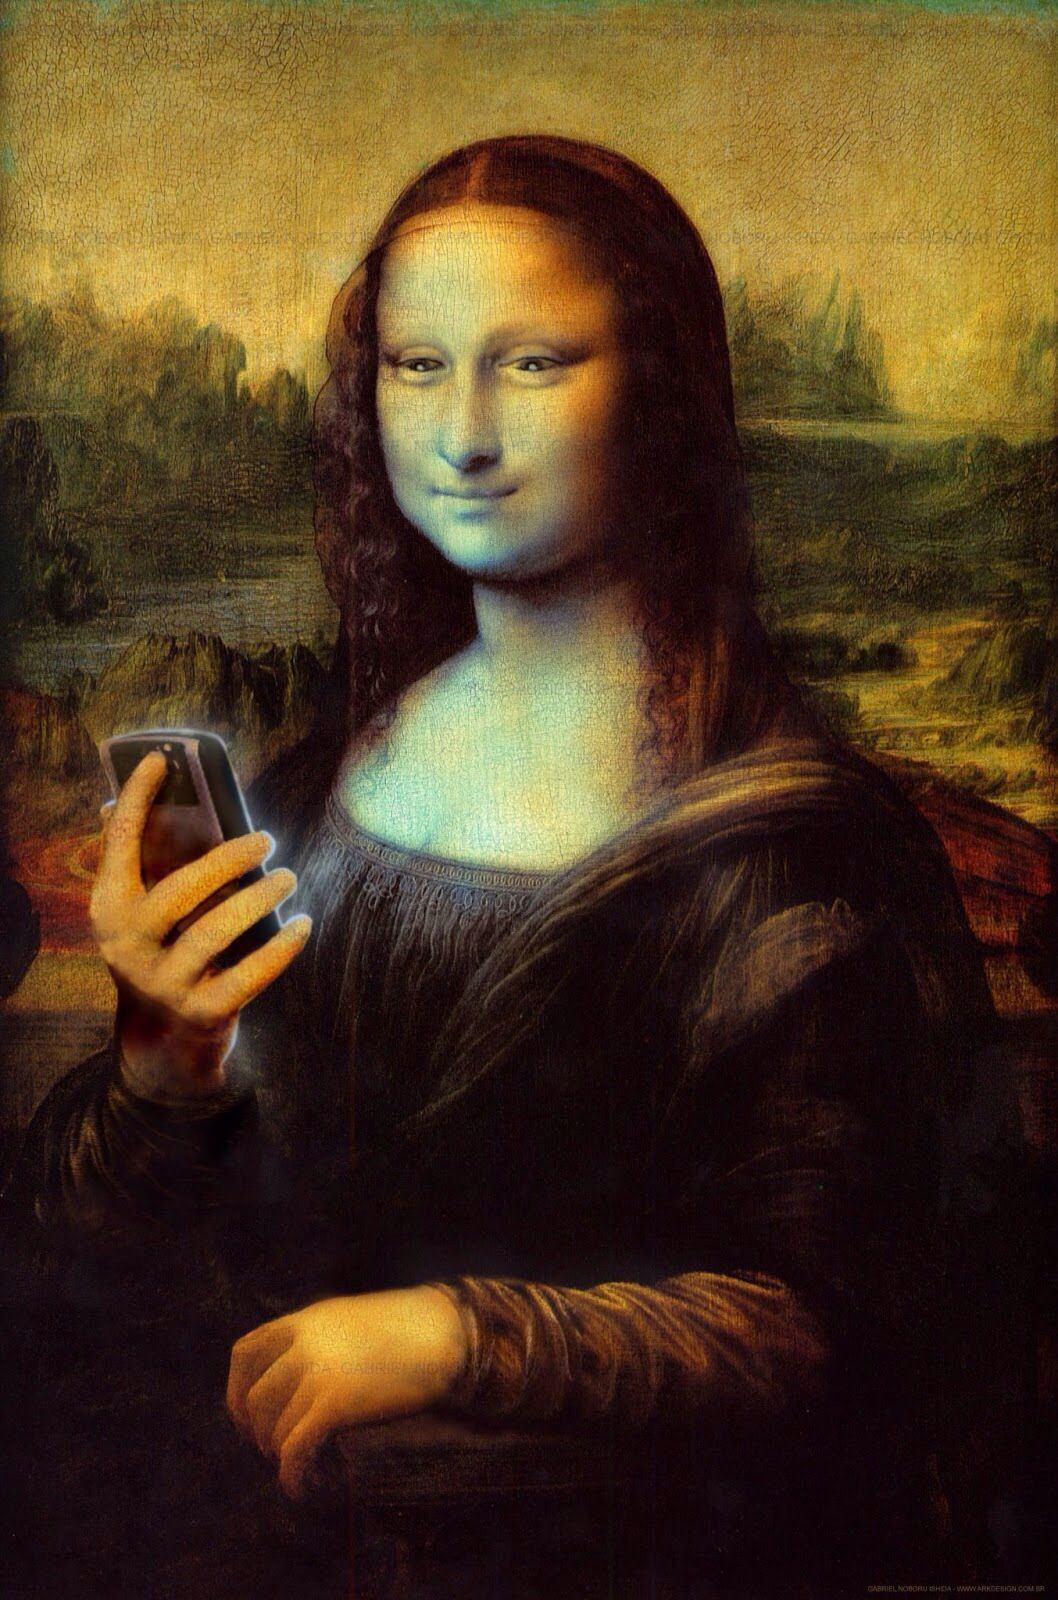 Mona Lisa Smile Mona Lisa Holding A Cell Phone Art Mona Lisa Art Mona